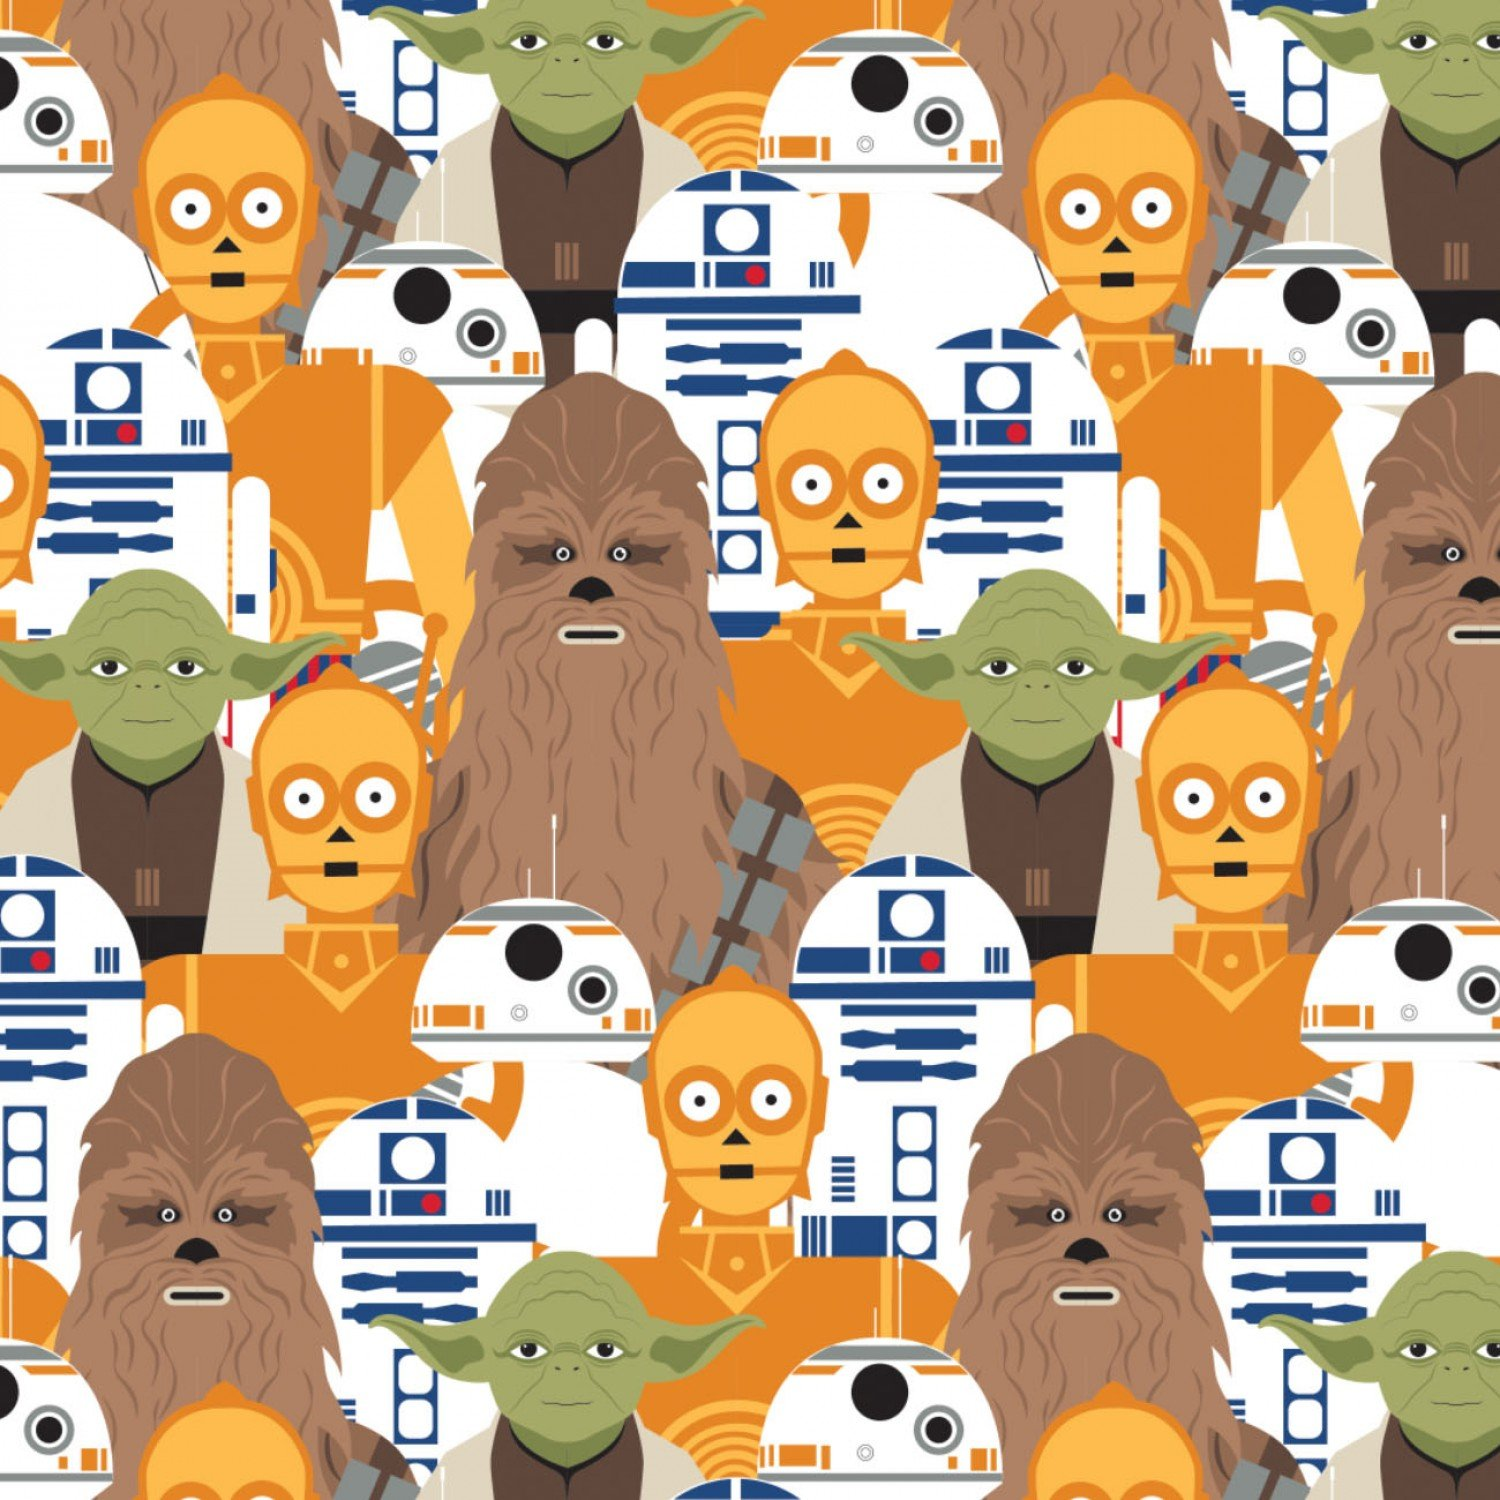 Star Wars Packed Characters Fabric by the Yard